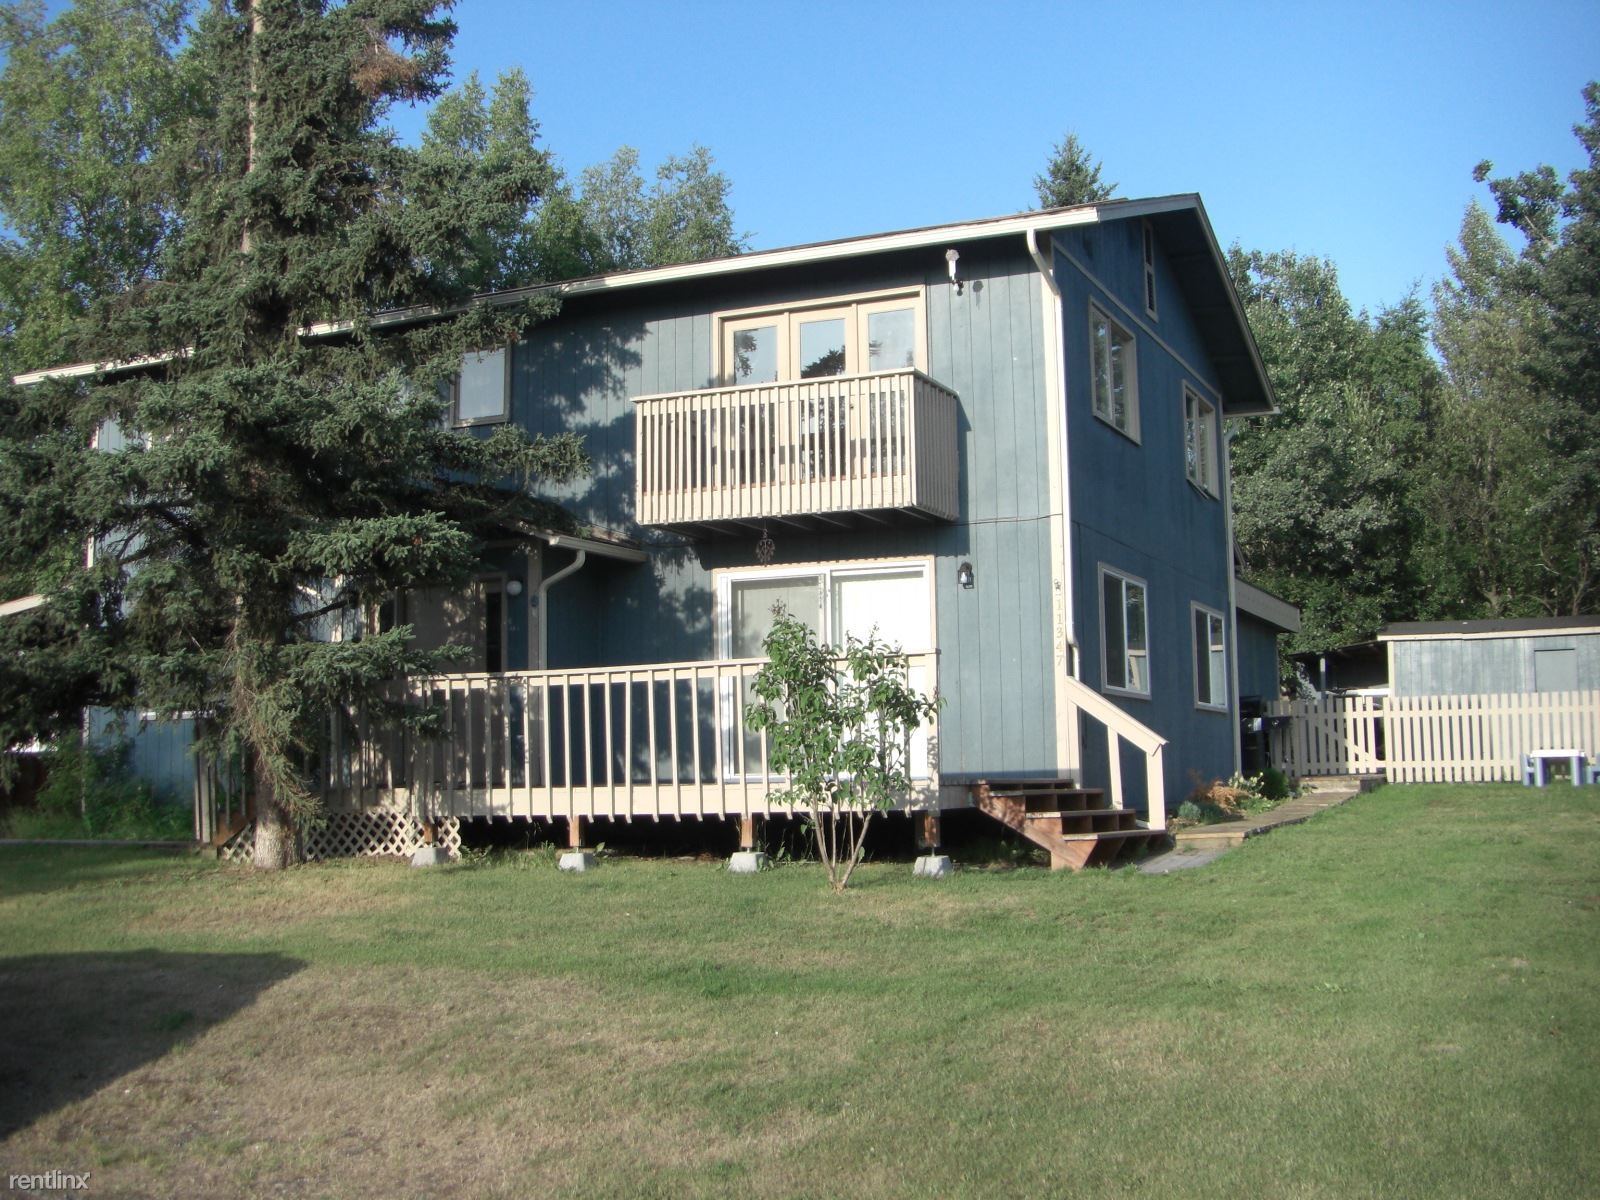 Duplex for Rent in Eagle River